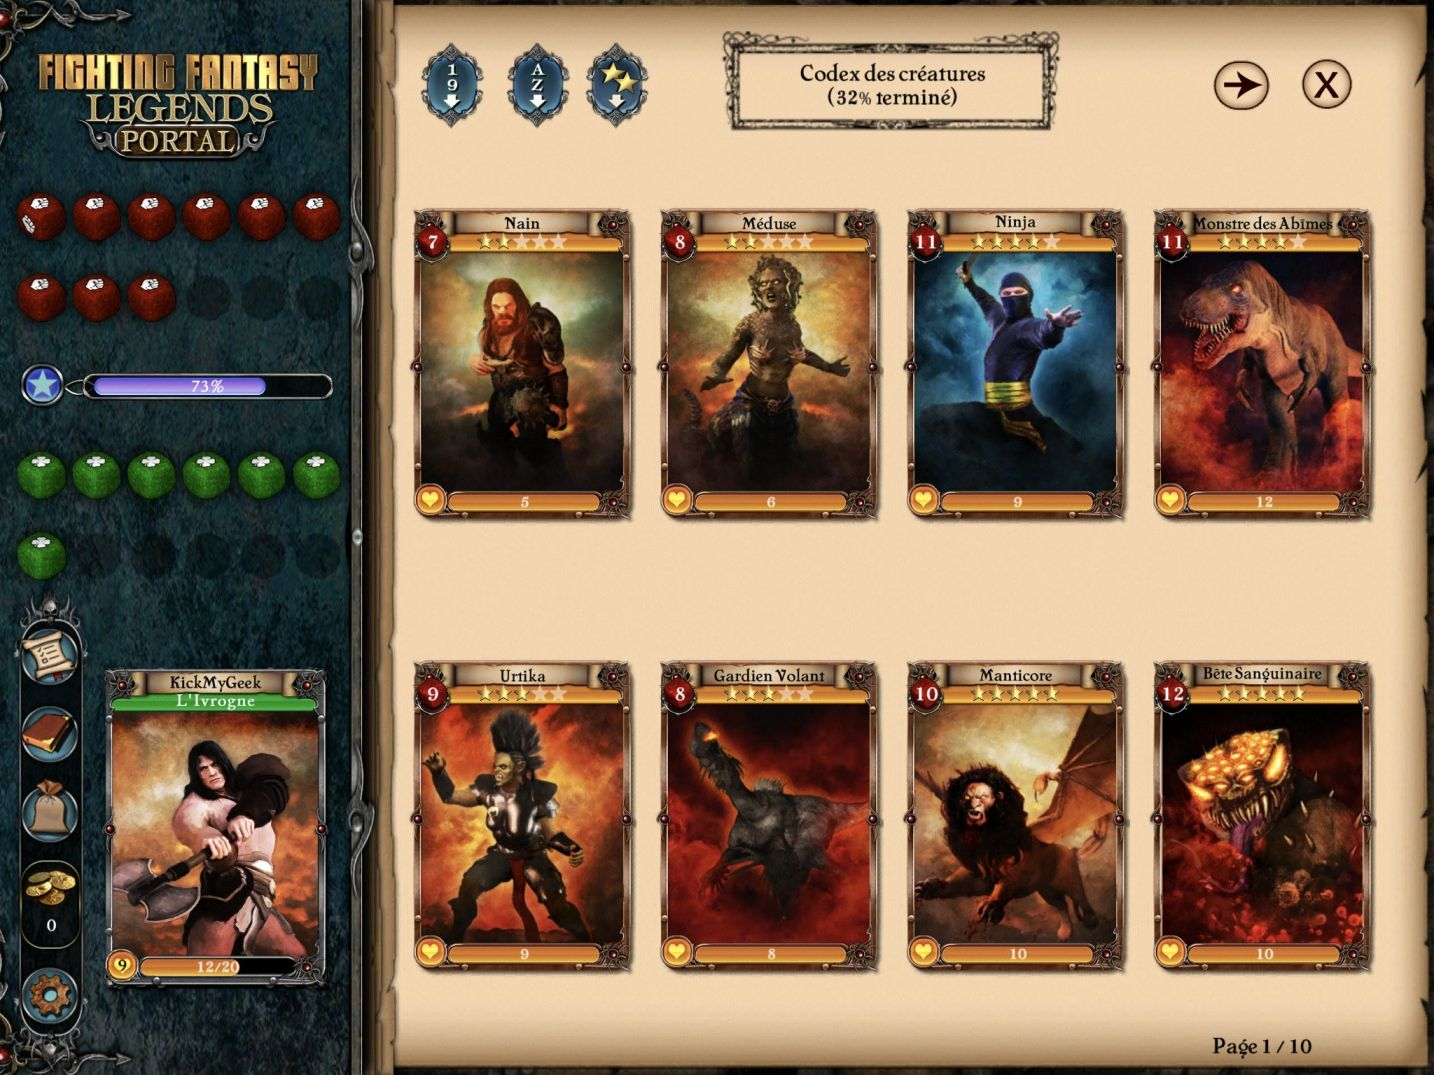 Fighting Fantasy Legends Portal (copie d'écran 16 sur iPhone / iPad)